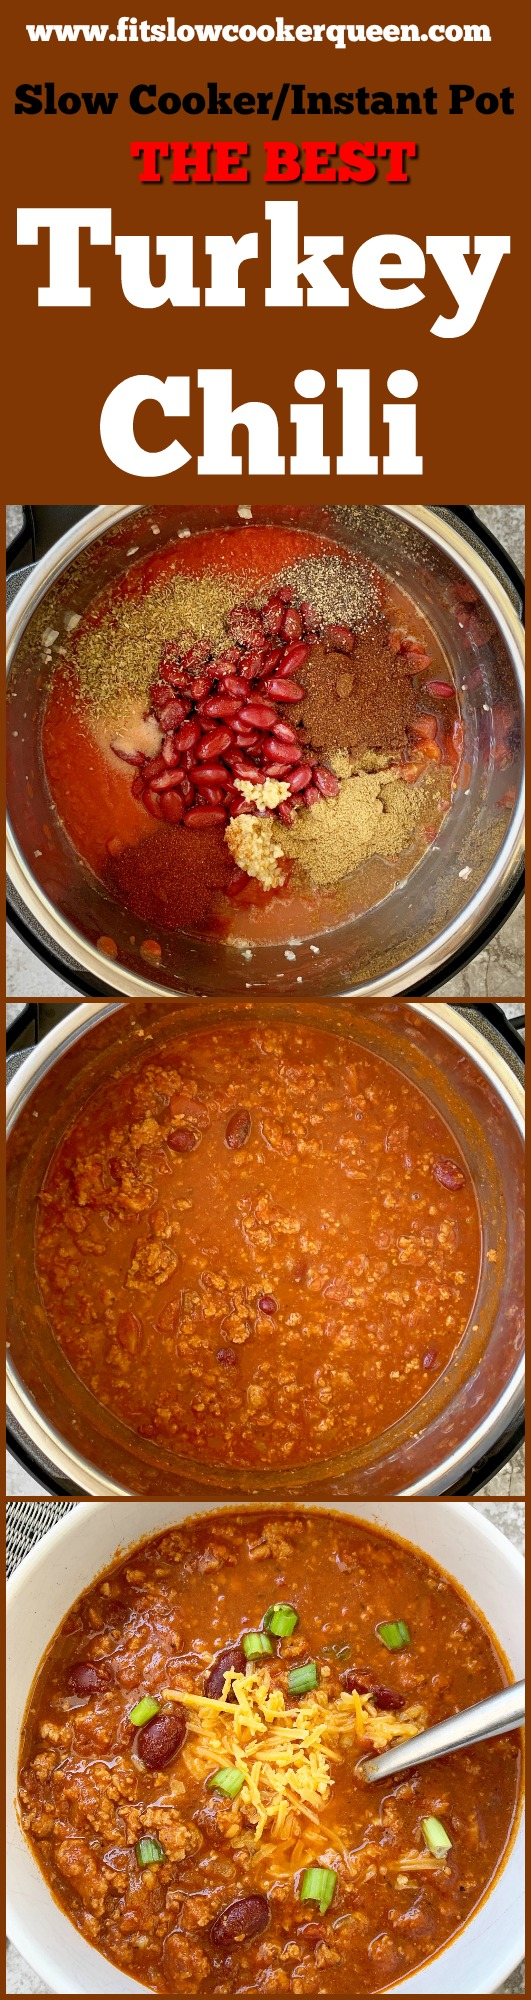 another pinterest pin for {VIDEO} The Best Turkey Chili Recipe (Slow Cooker_Instant Pot)